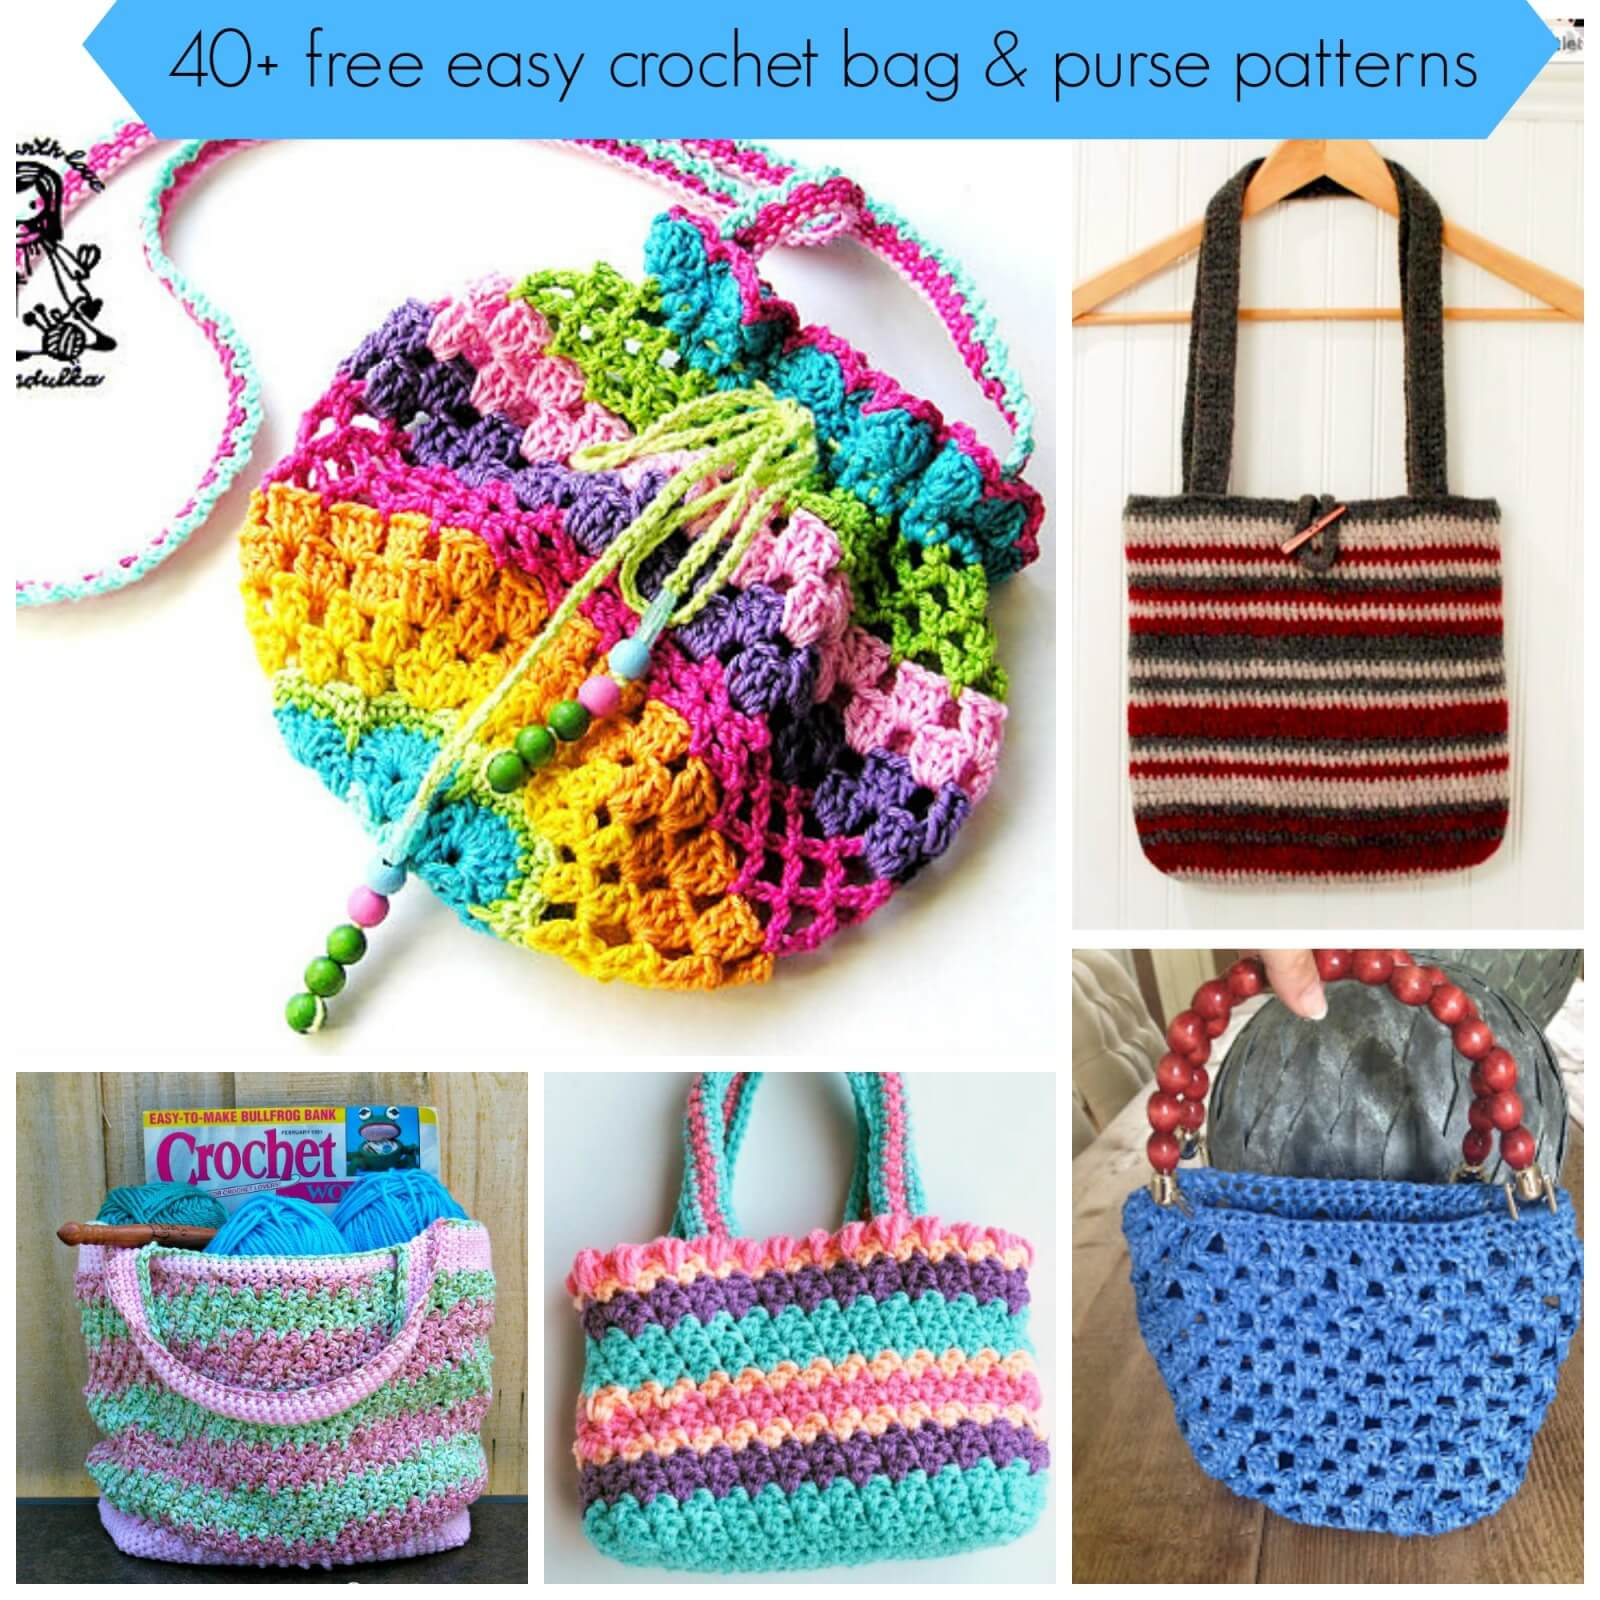 Simple Crochet Bag Pattern : 40+ free easy crochet bag & purse patterns